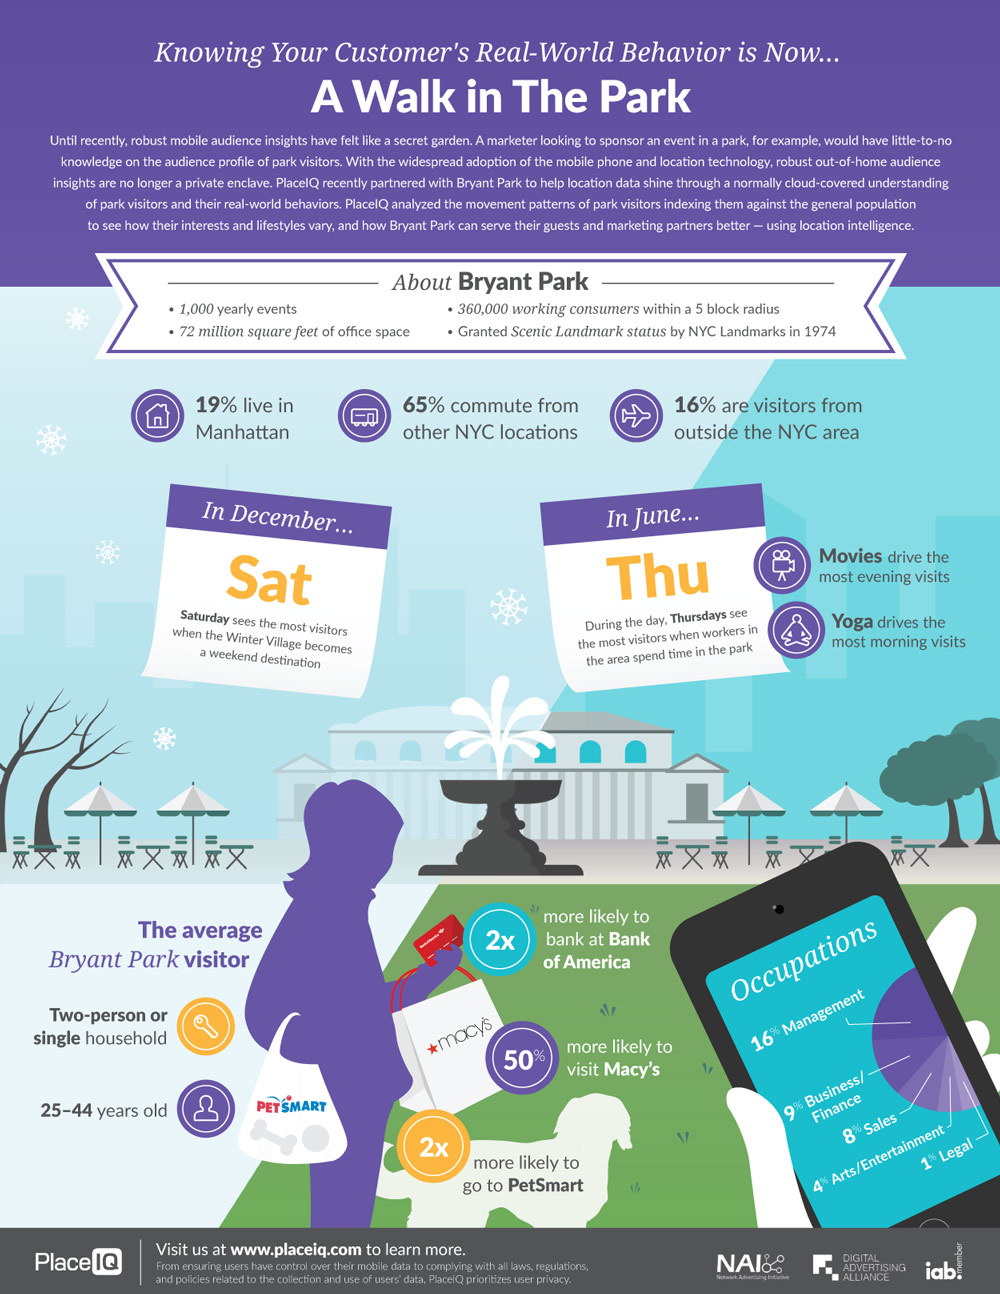 INFOGRAPHIC: Knowing your customer's real-world behavior is now a walk in the park